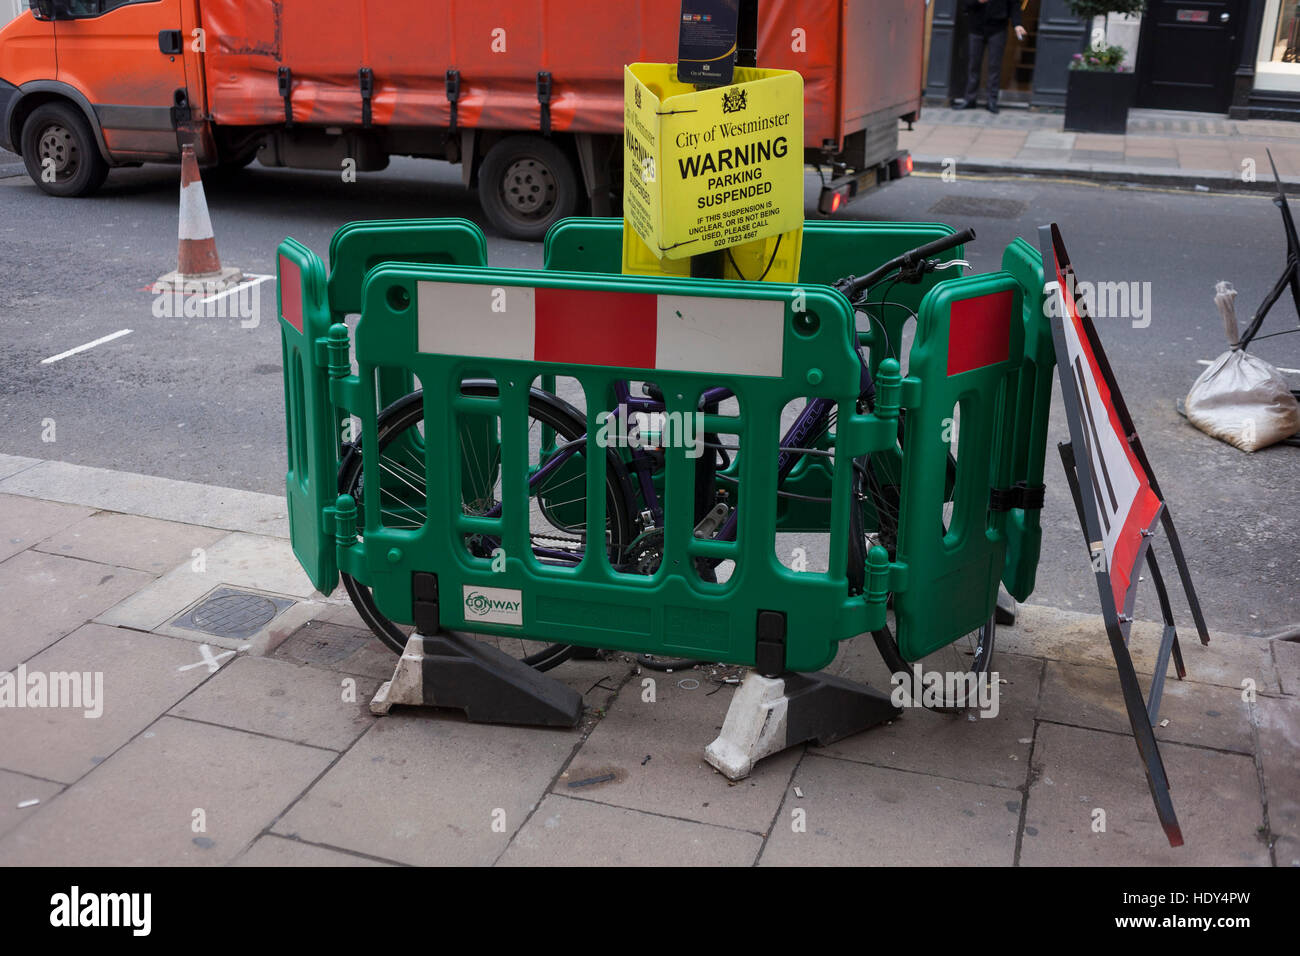 A Bike Has Been Fenced In Between Some Construction Barriers And